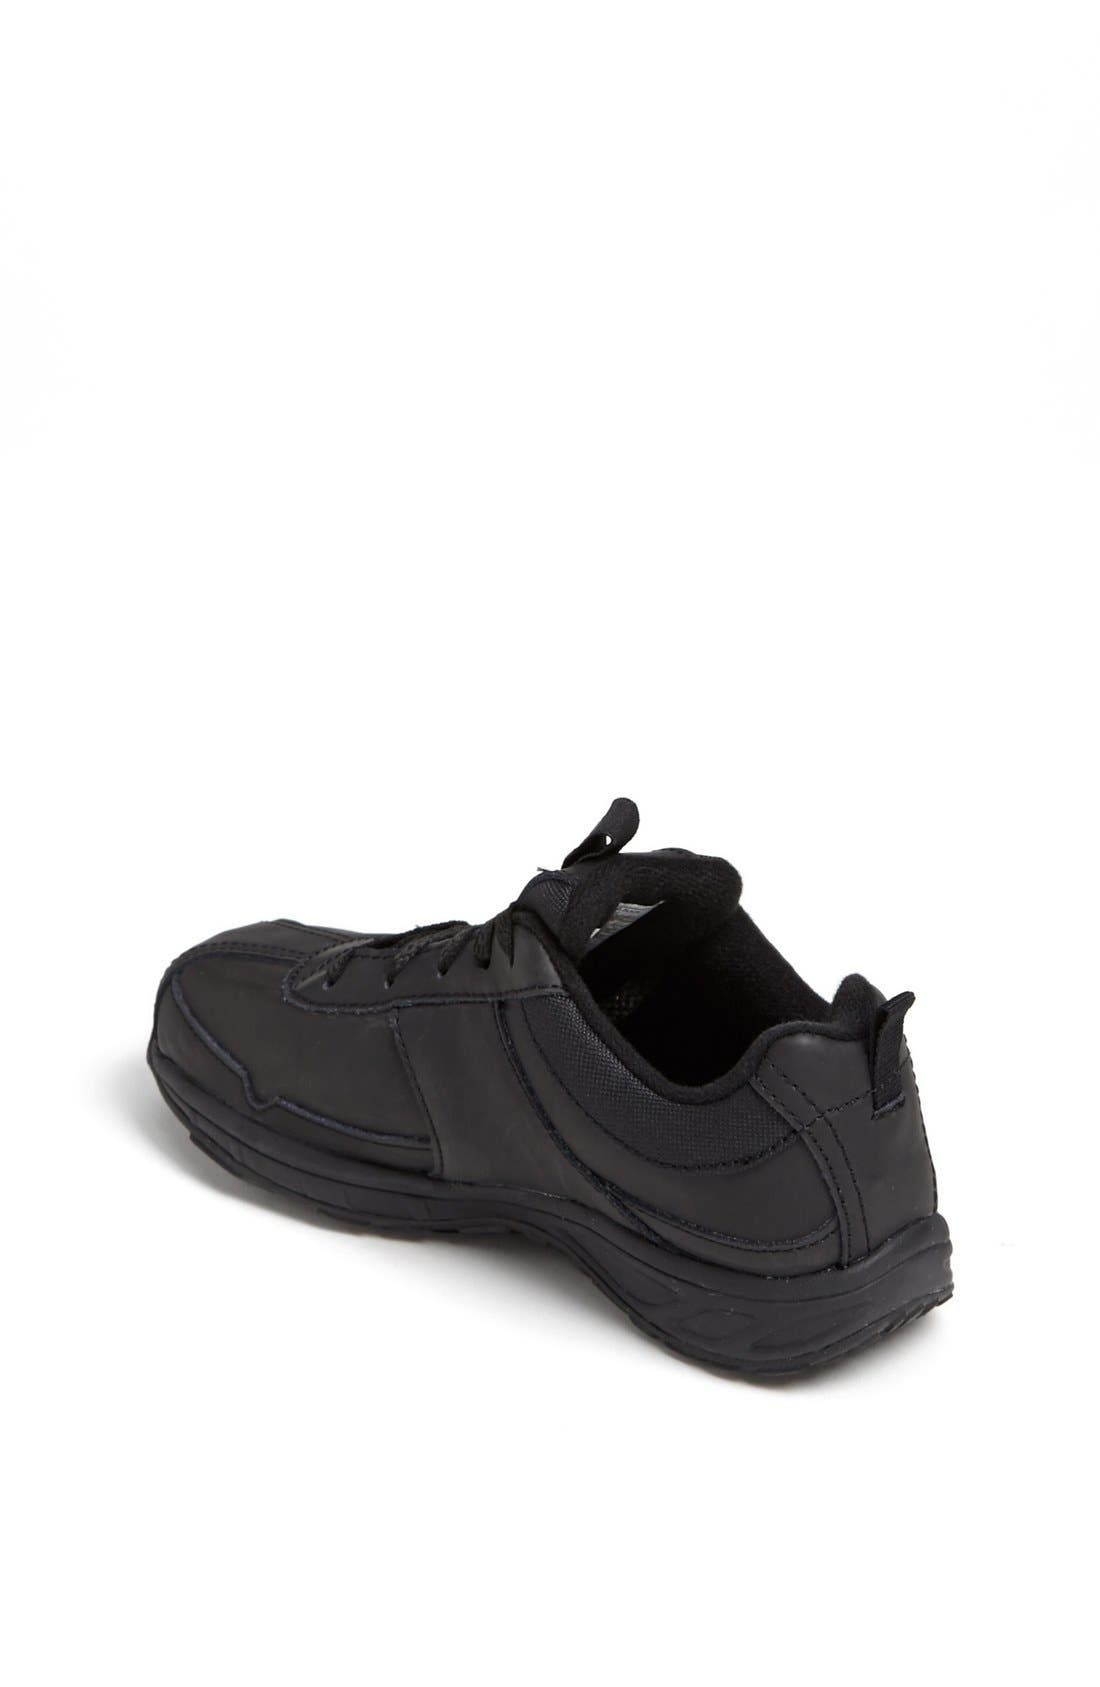 Alternate Image 2  - Merrell 'Orbiteer' Sneaker (Toddler, Little Kid & Big Kid)